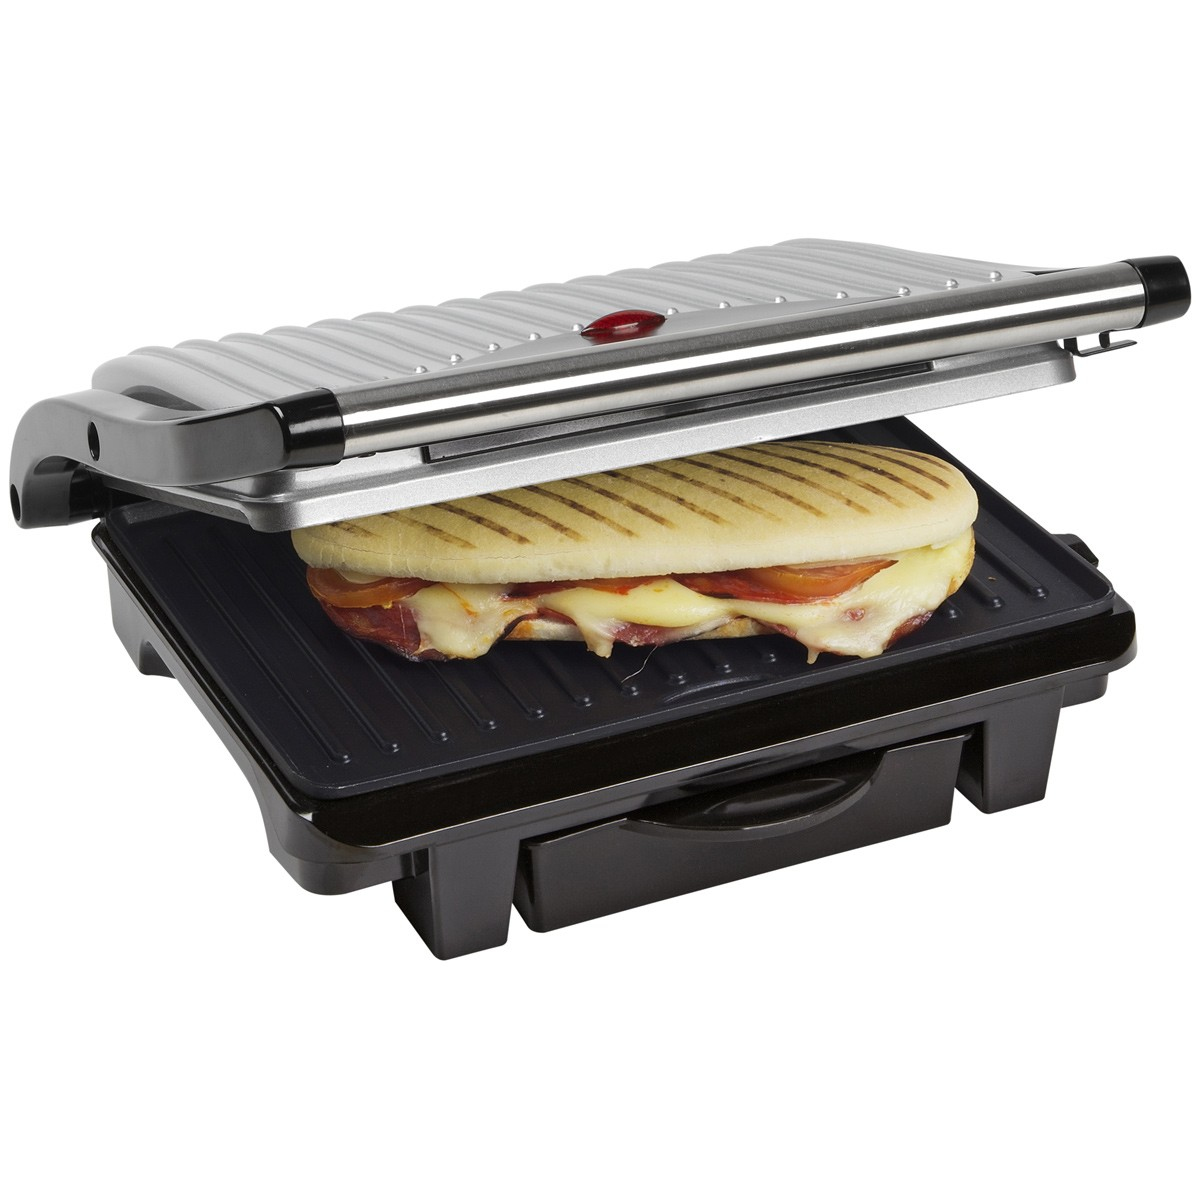 Image of Bestron Asw113 - Panini Grill - Grijs